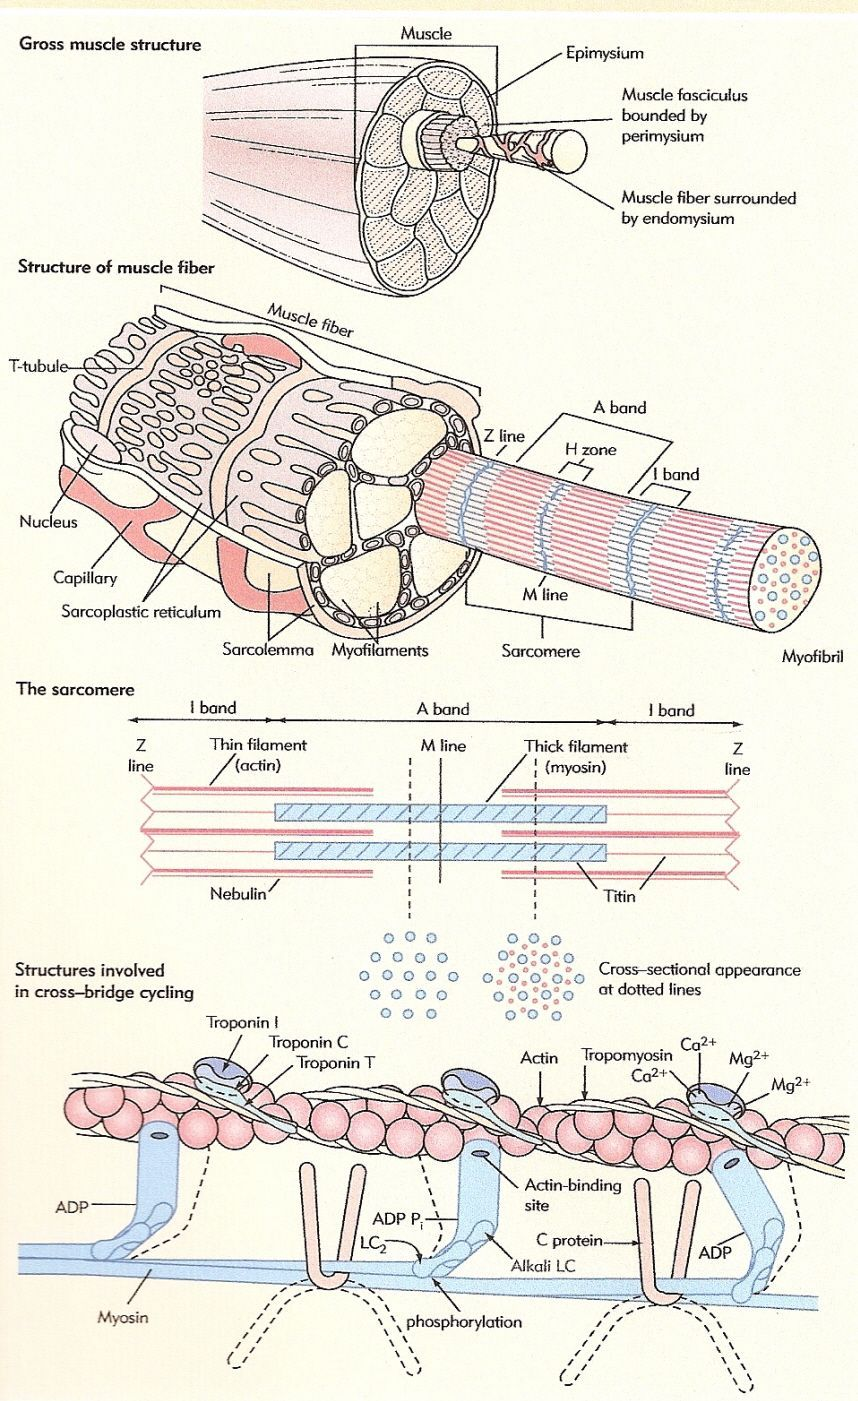 Physiology Resorces: skeletal muscle physiology | MCAT | Pinterest ...